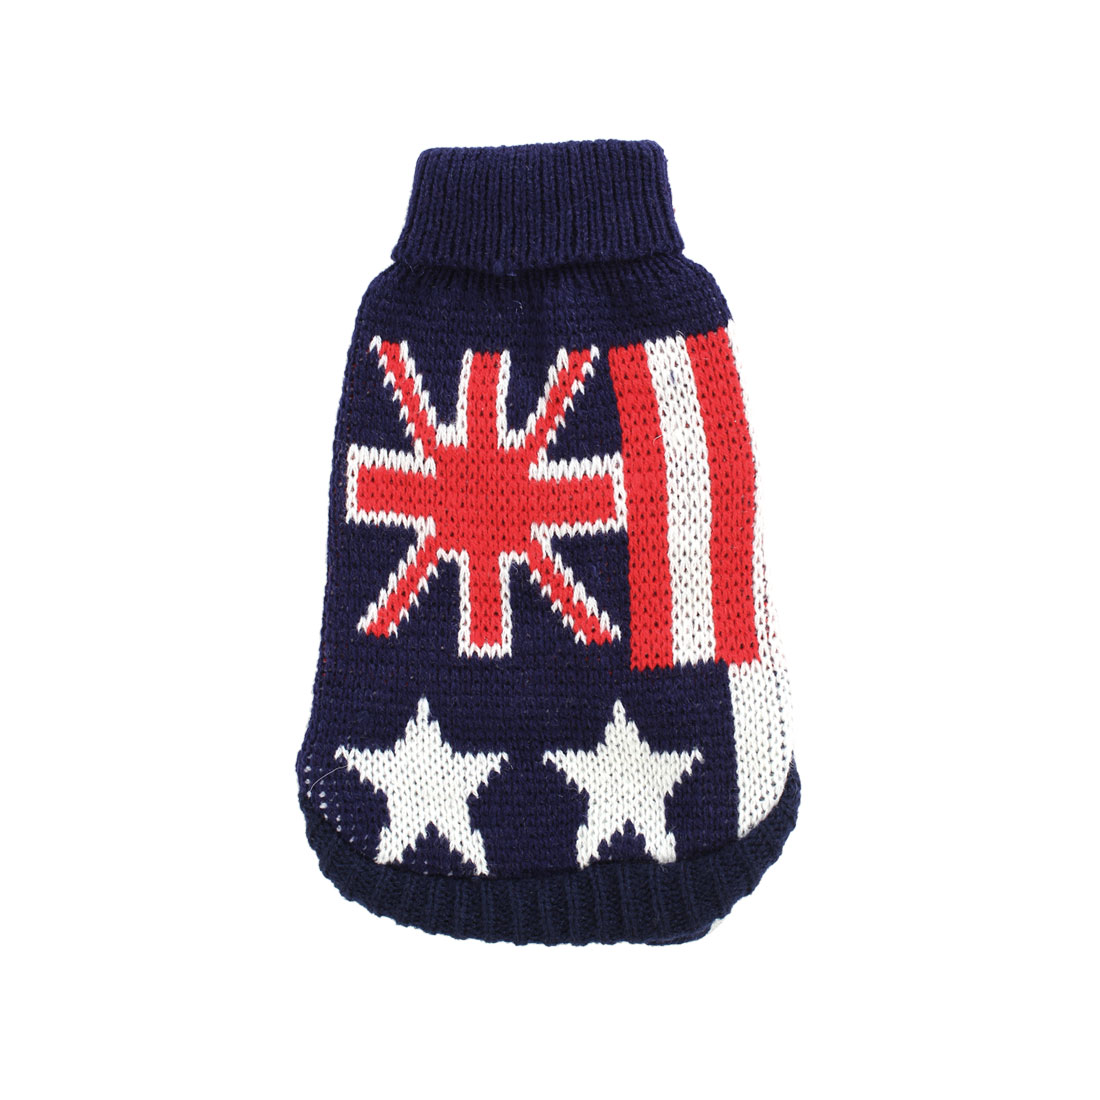 Pet Dog Doggie Flag Pattern Dark Blue Red White Ribbed Cuff Knitwear Turtleneck Apparel Sweater Size XS